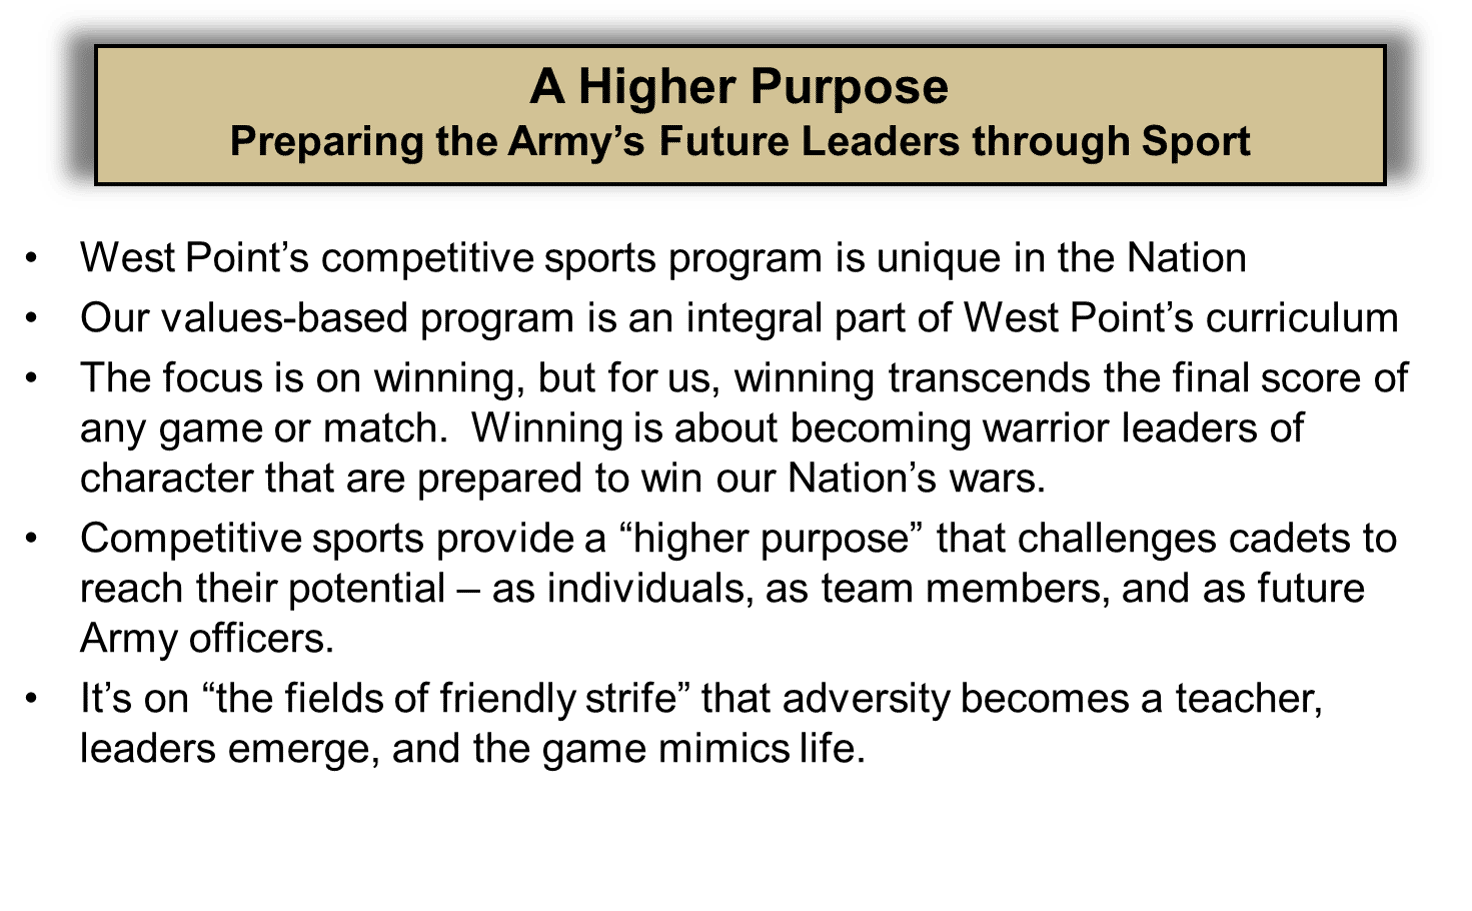 Preparing future leaders through sport